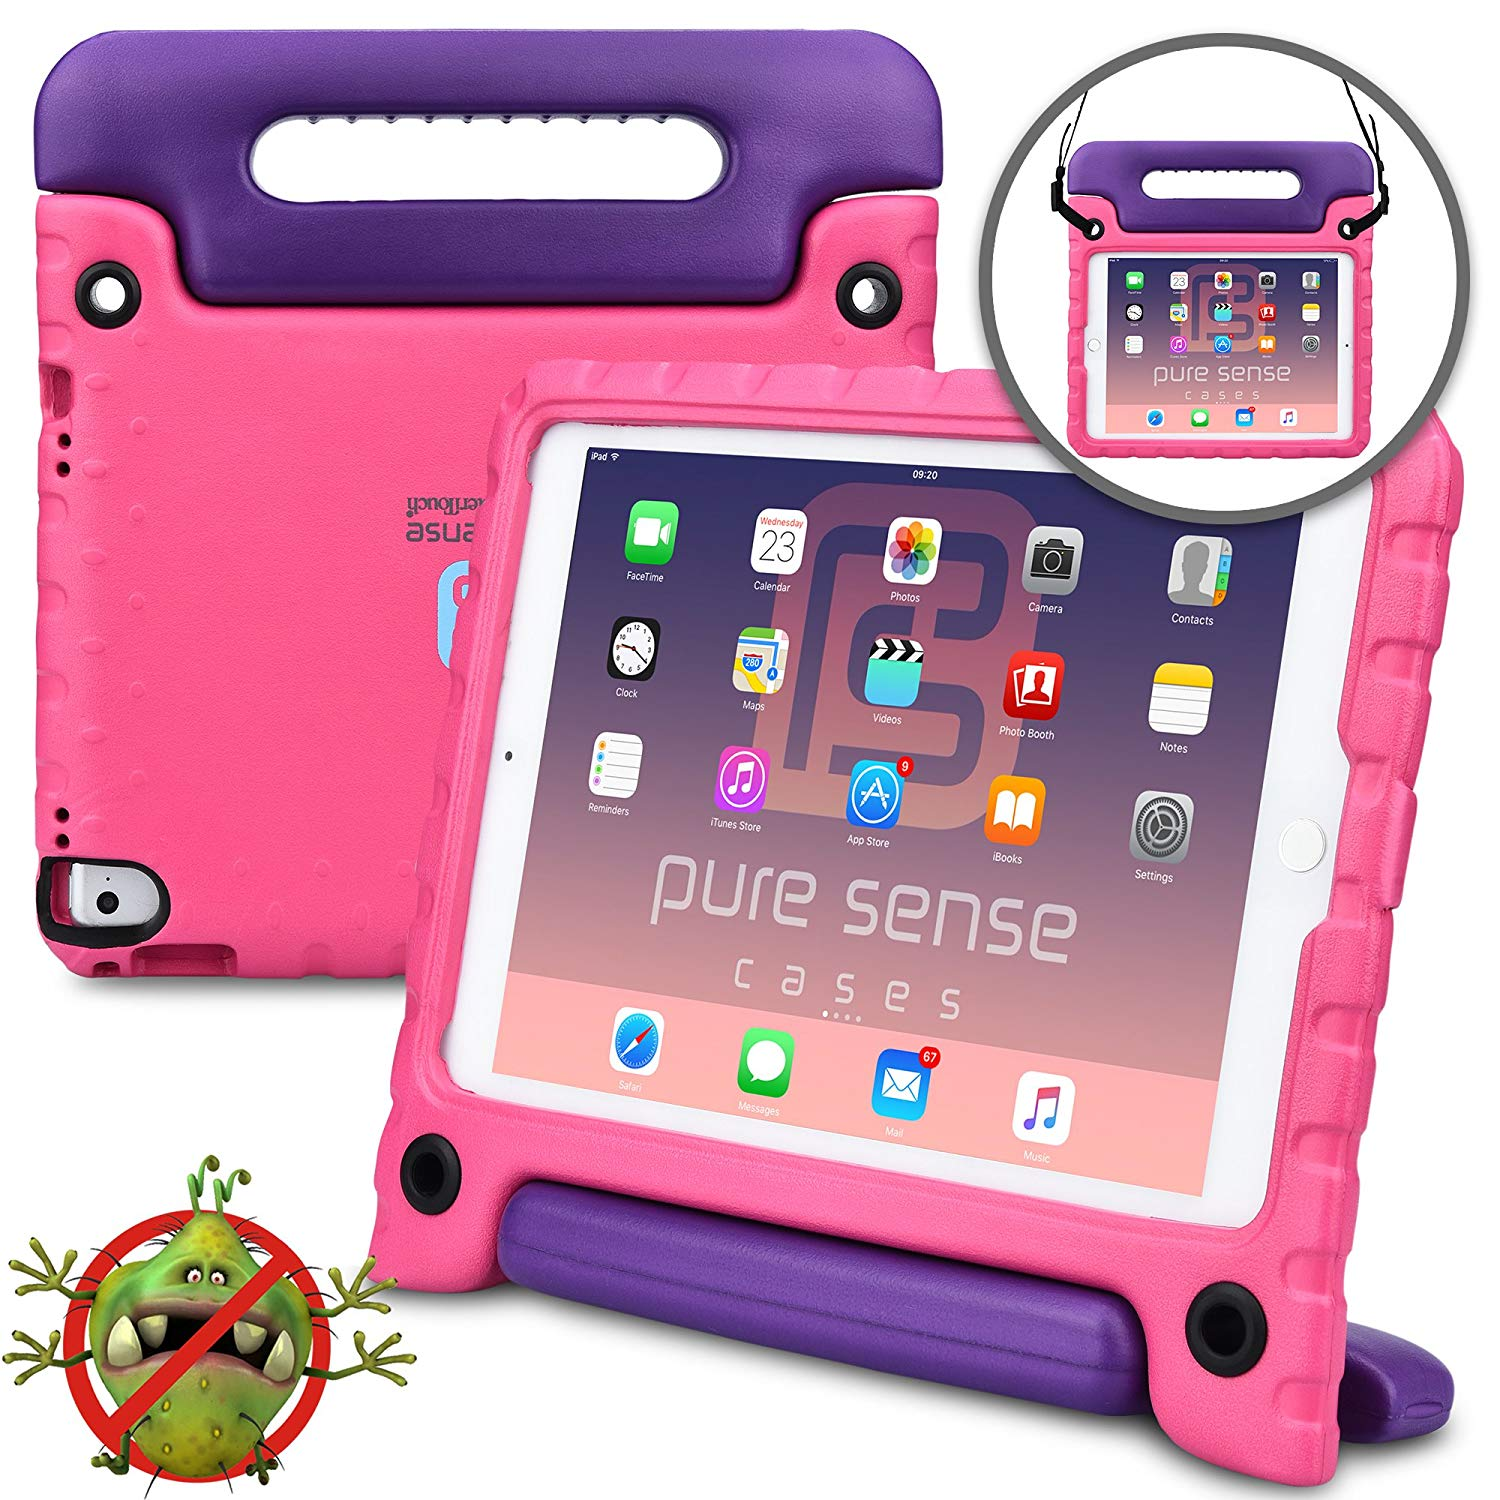 Pure Sense Buddy Kids Case Compatible with iPad Pro 9.7, iPad Air 2 | Anti Microbial Shock Proof Cover for Kids | Boys, Girls | Shoulder Strap, Handle & Stand | Apple A1673 A1674 A1566 A1567